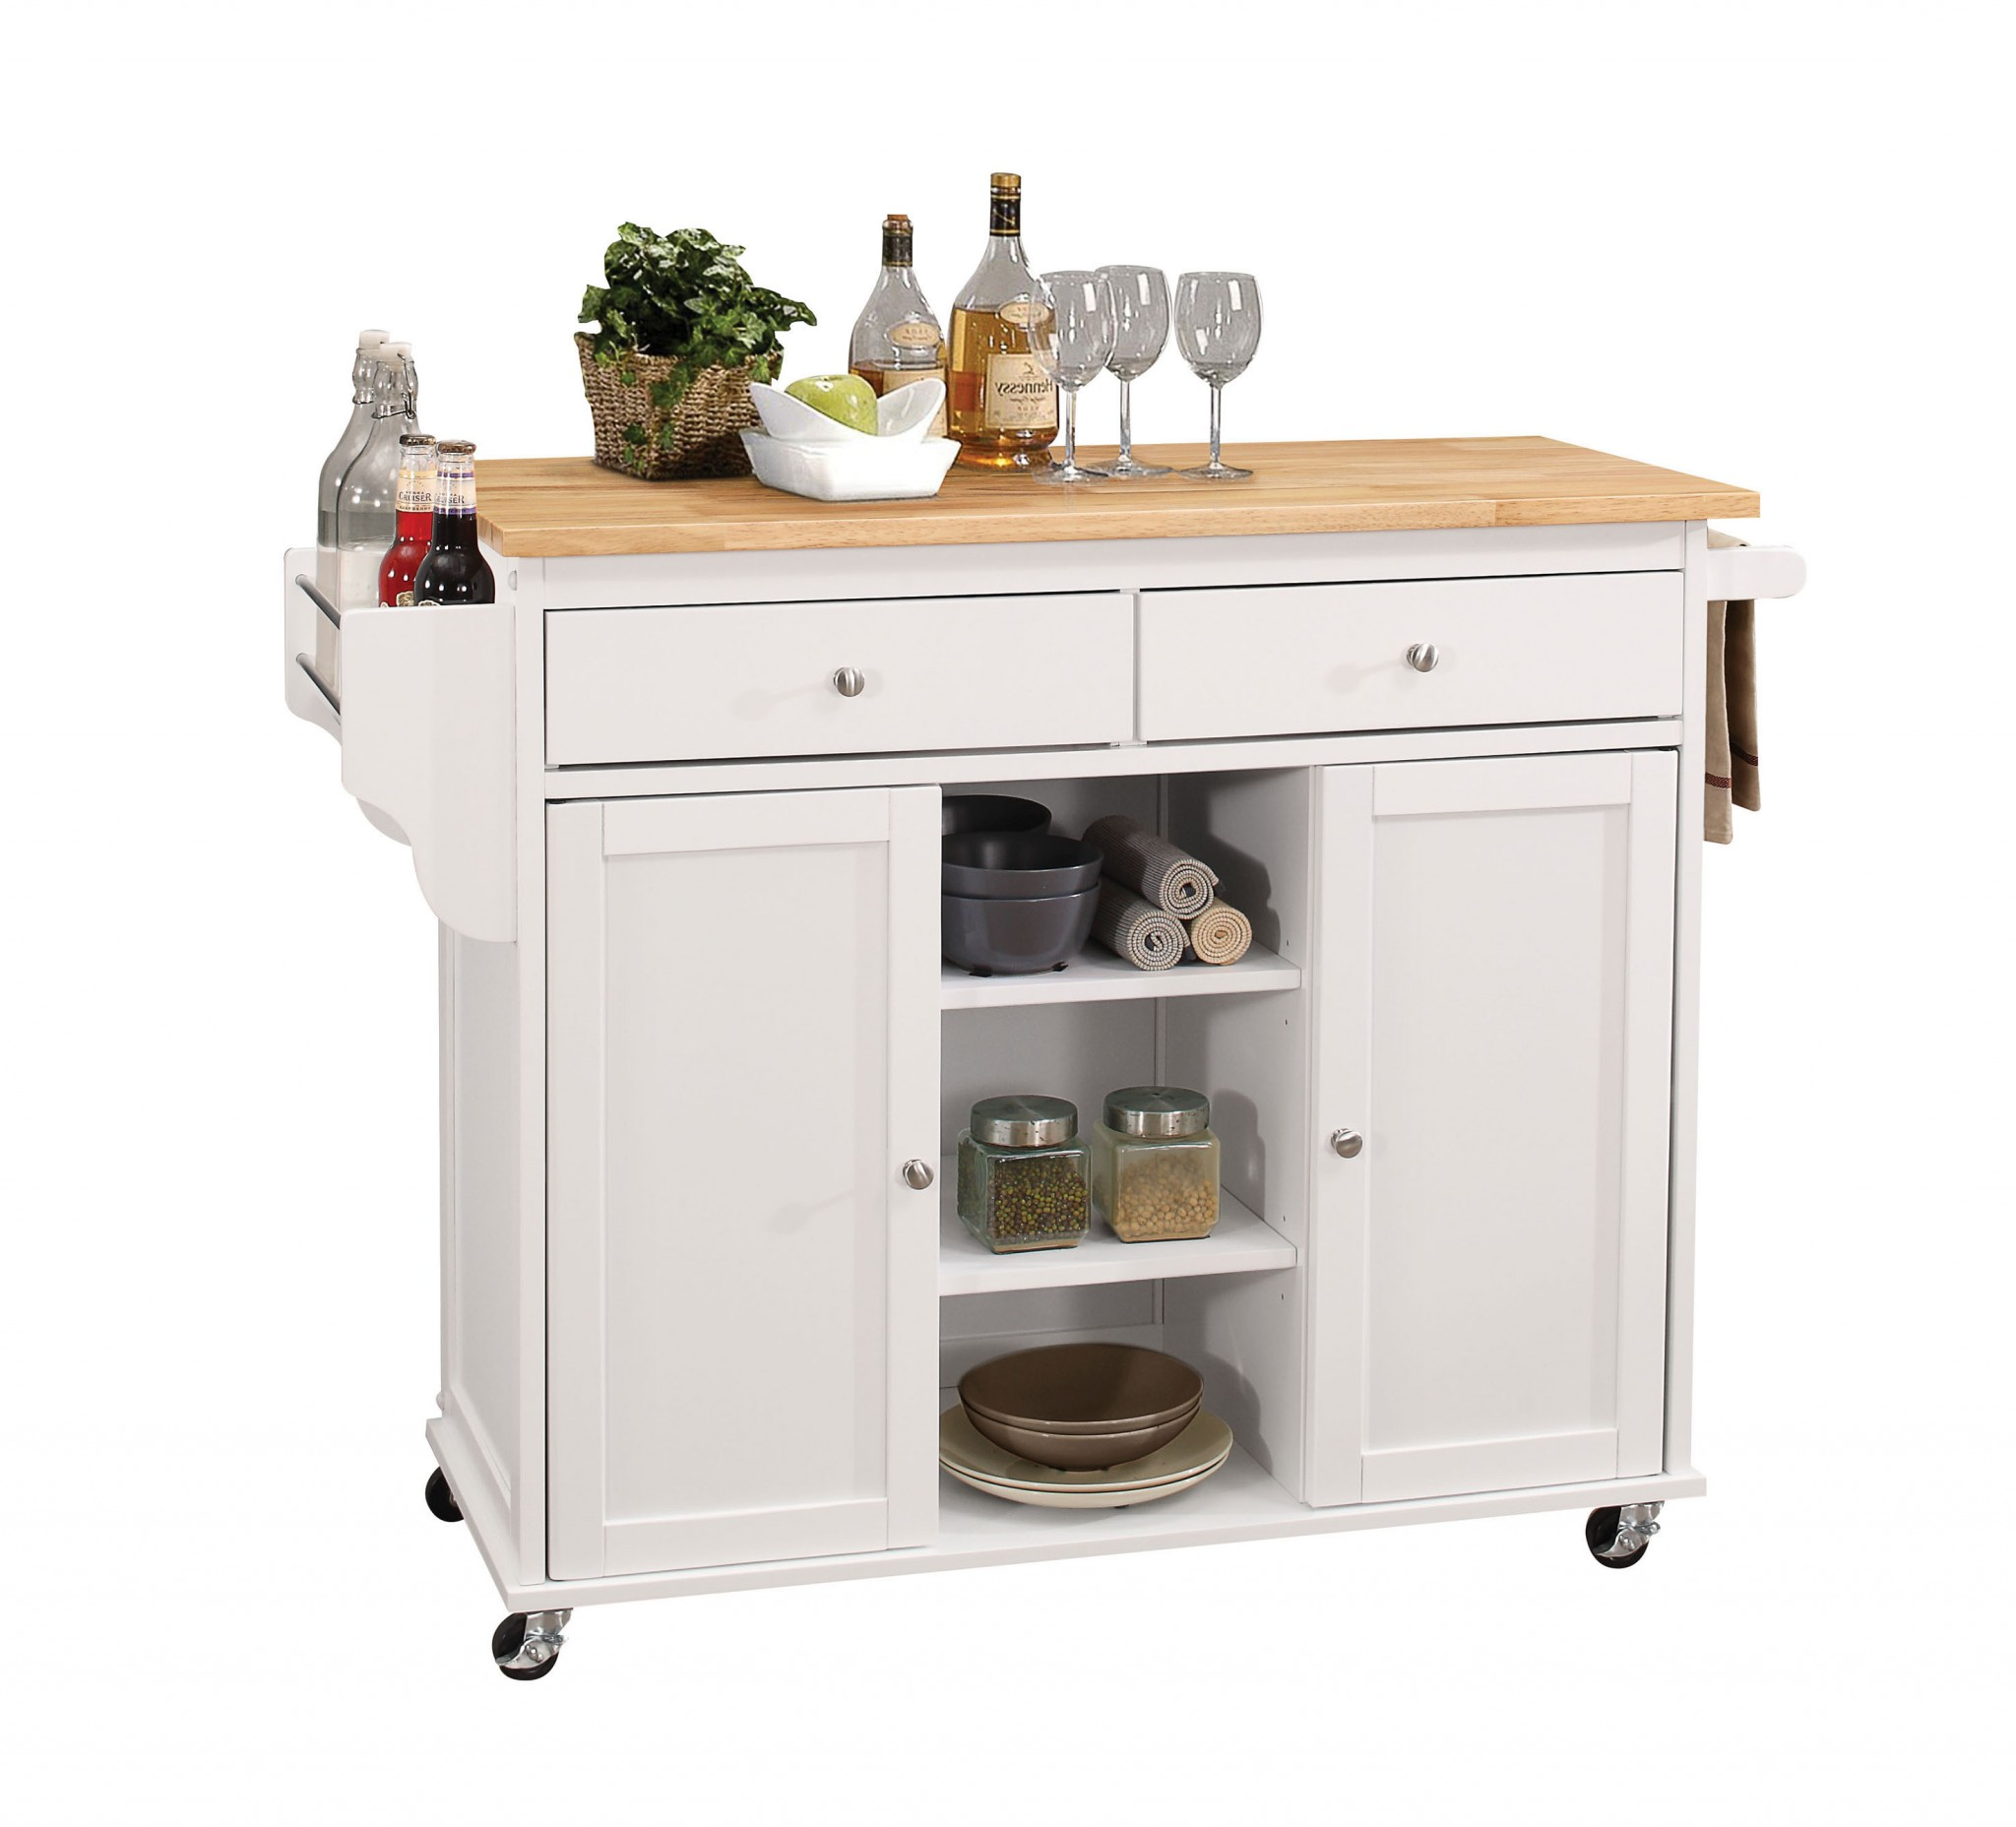 Kitchen Island In Natural And White - Rubber Wood, Mdf Natural And White